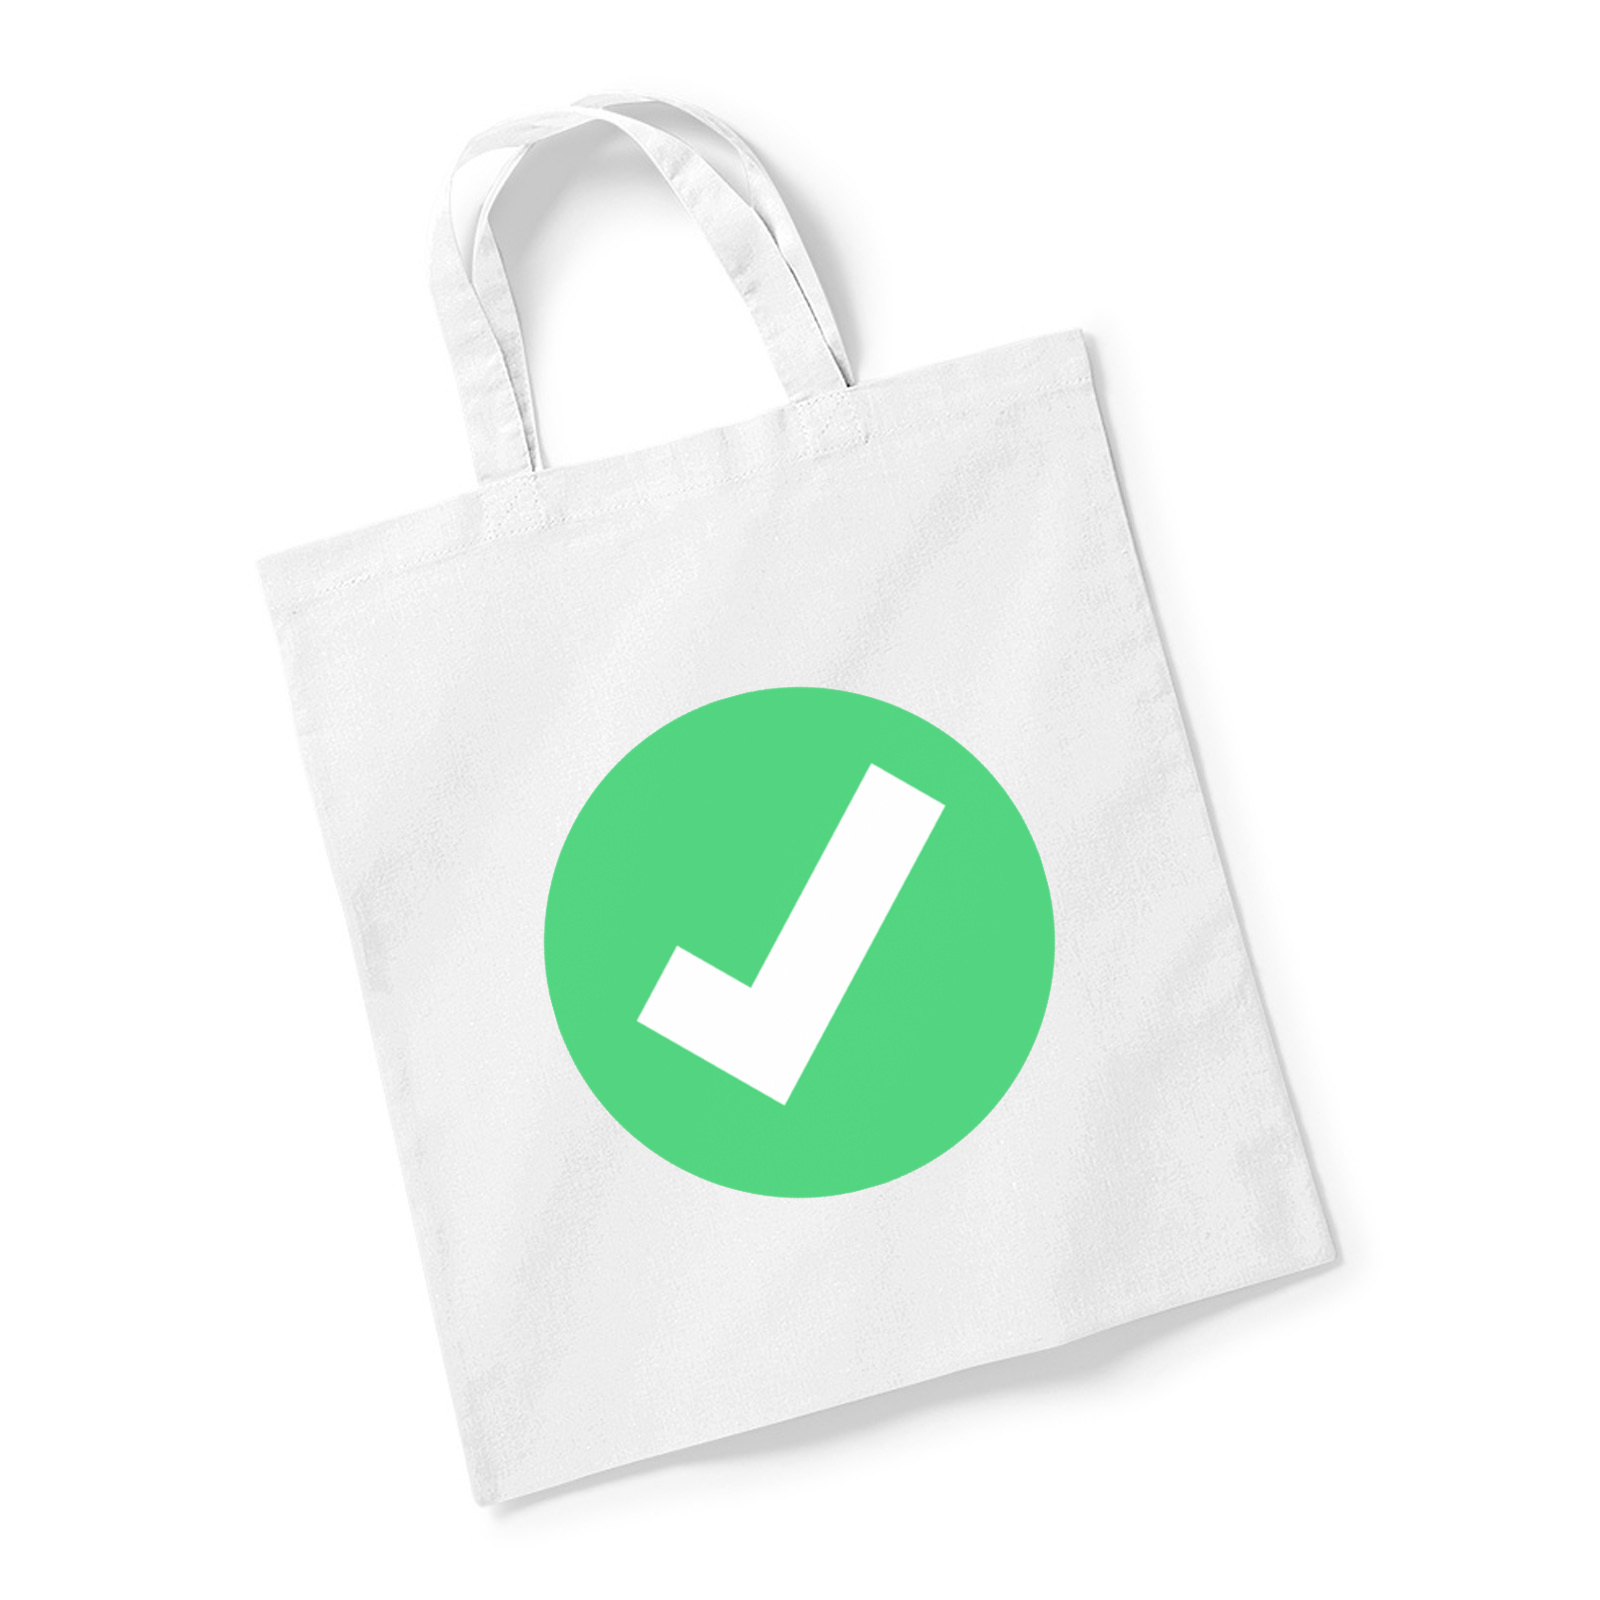 emoji white heavy check mark reusable bag for life available in